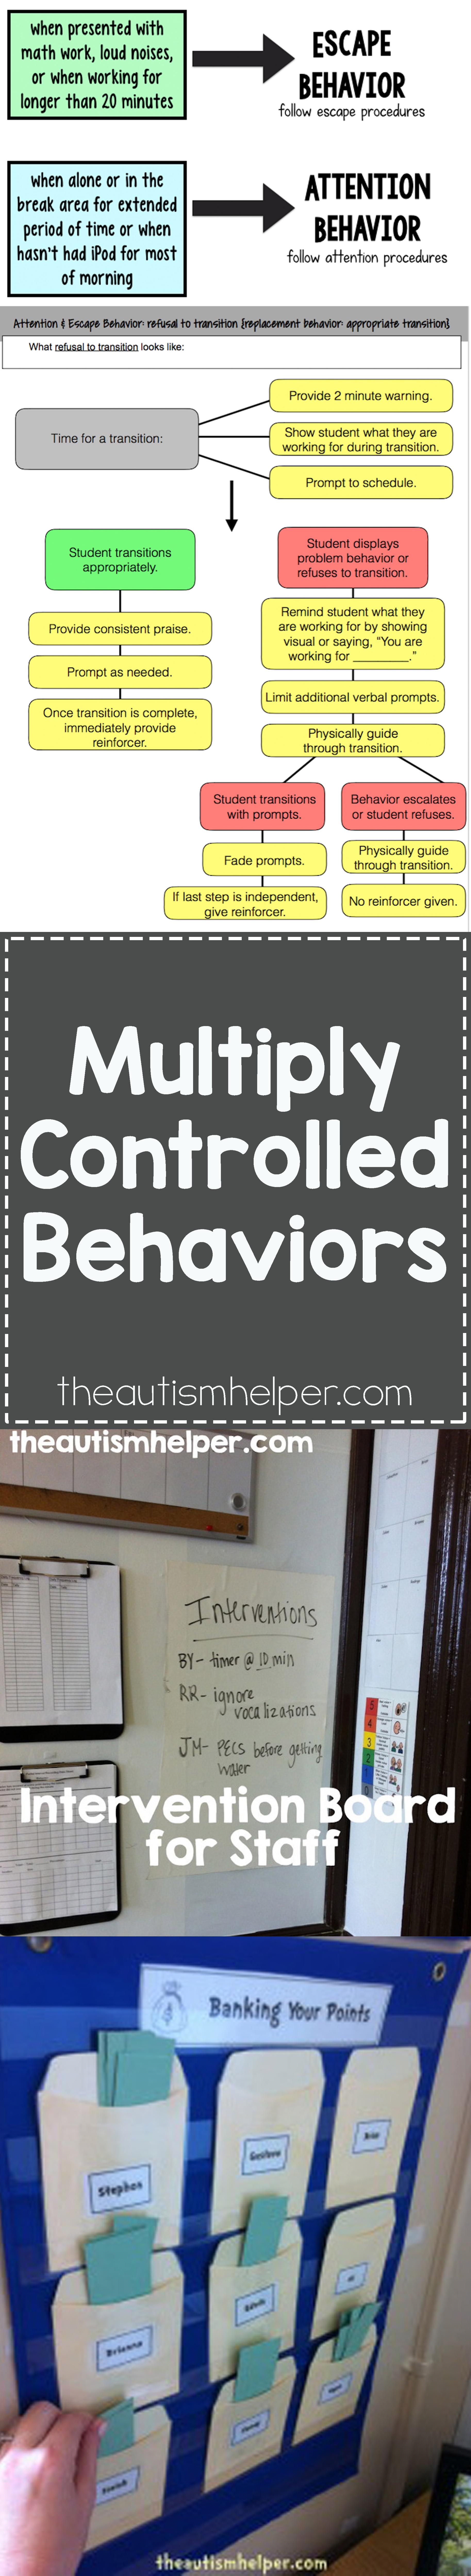 Multiply Controlled Behaviors